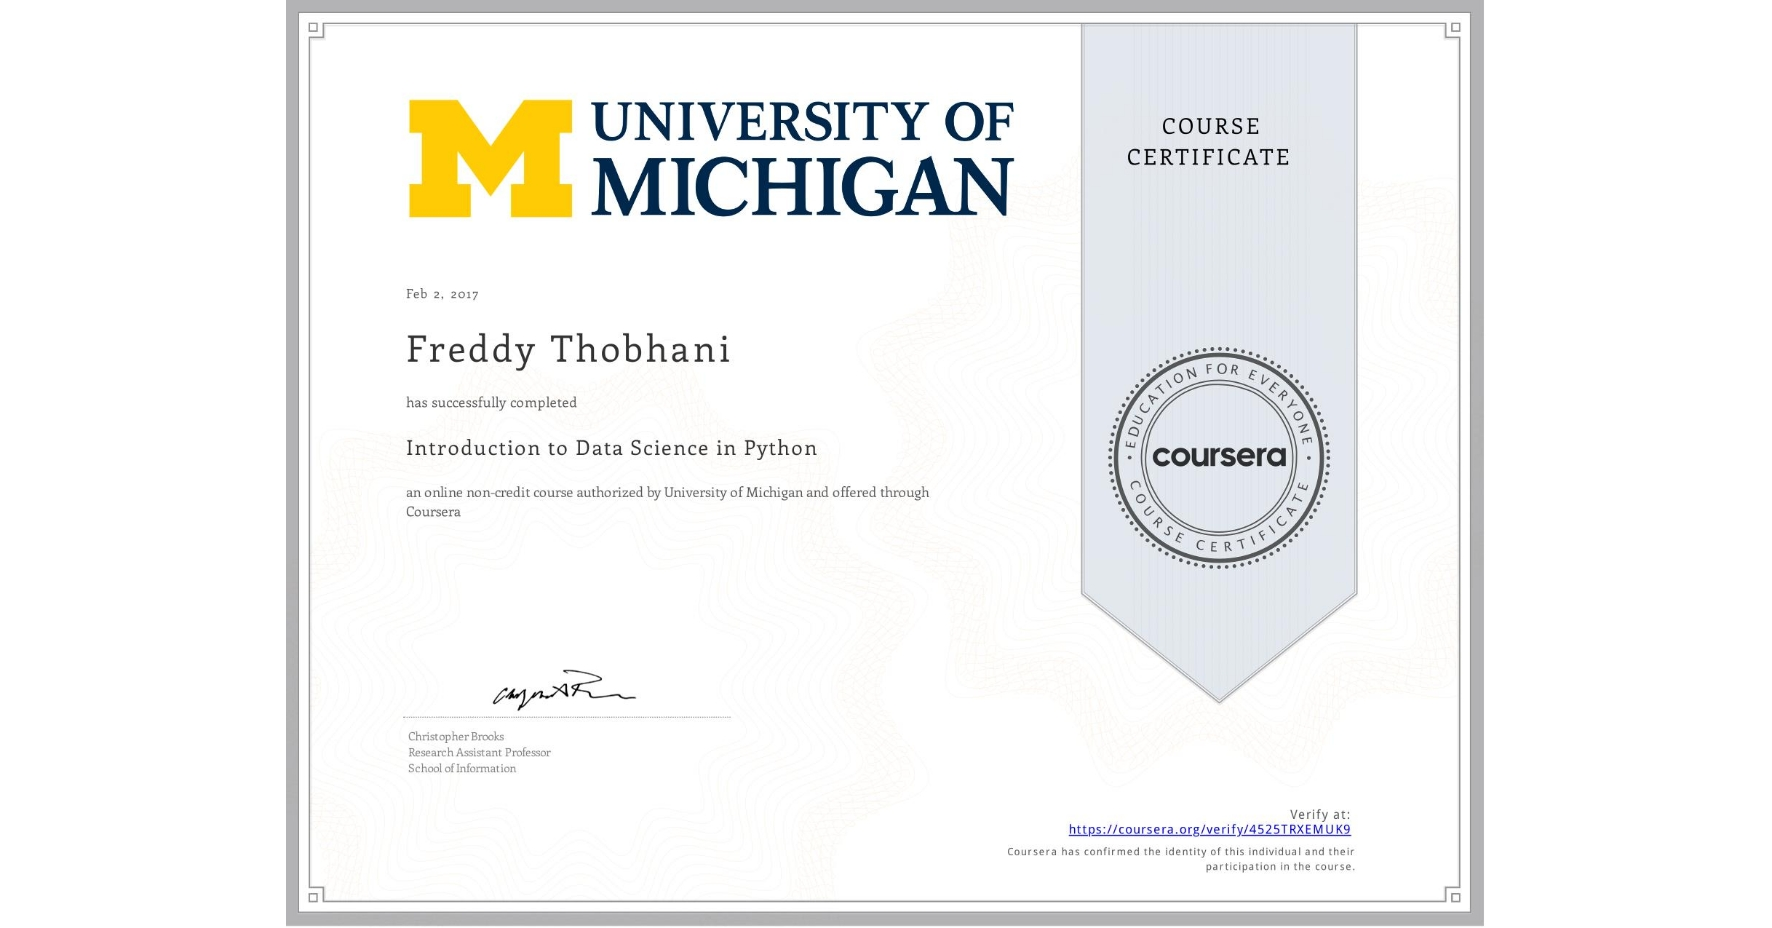 View certificate for Freddy Thobhani, Introduction to Data Science in Python, an online non-credit course authorized by University of Michigan and offered through Coursera